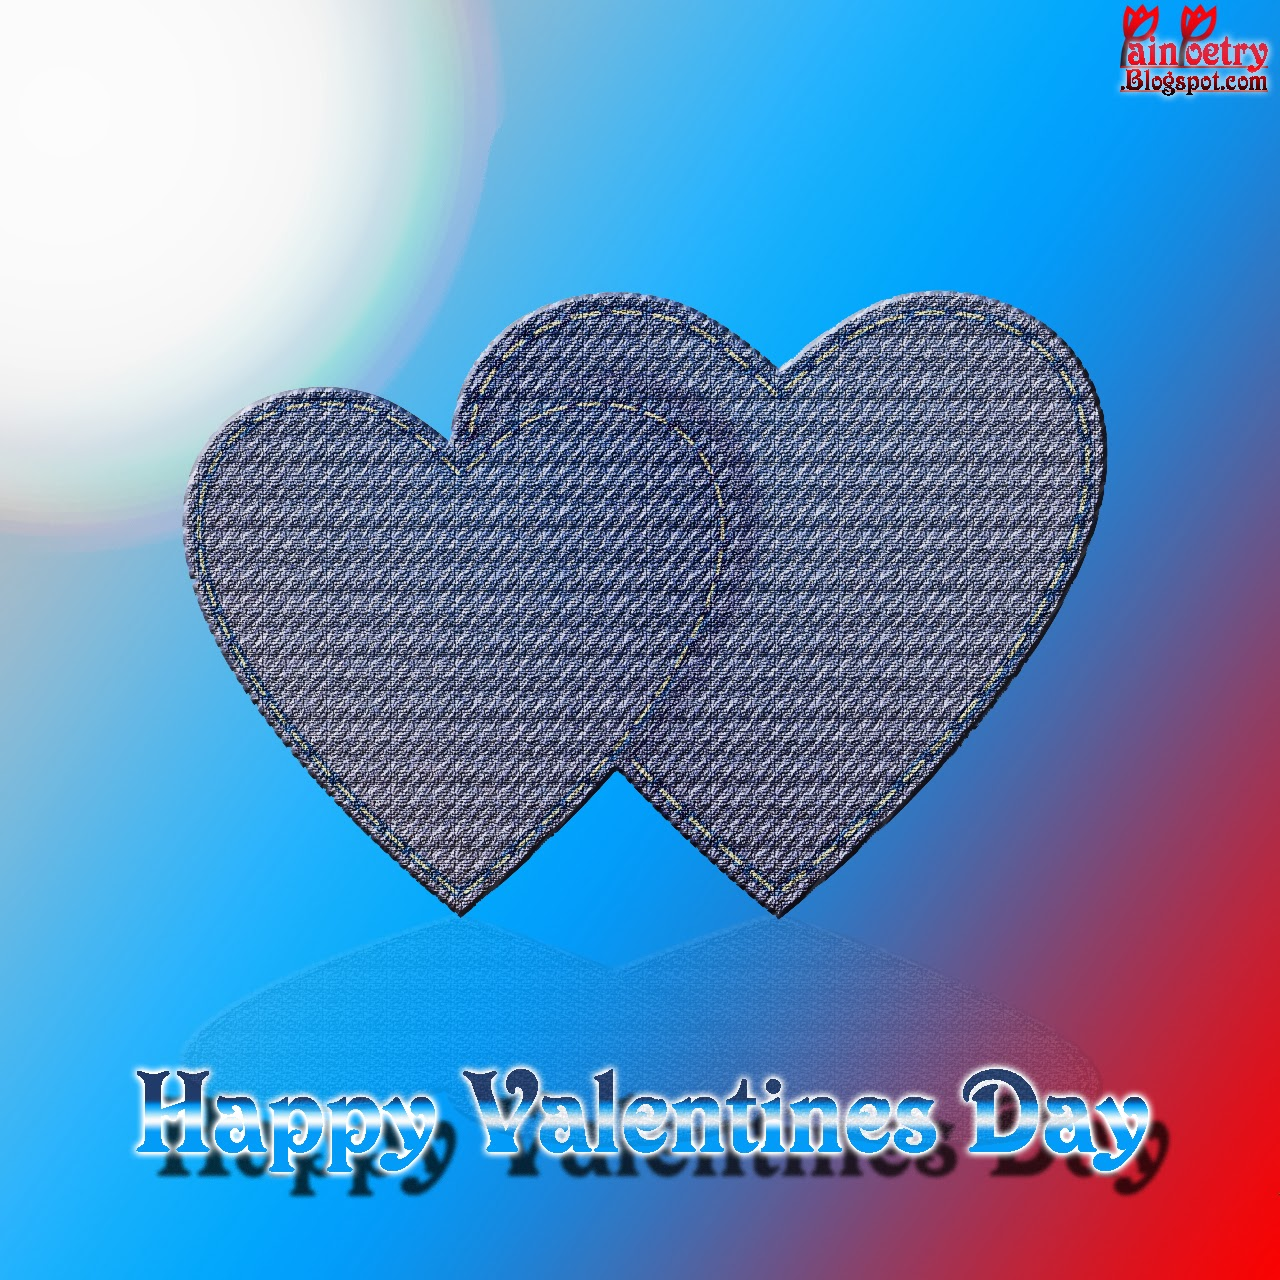 Happy-Valentines-Day-Wishes-Walpaper-2-Heart-In-Love-Image-HD-Wide